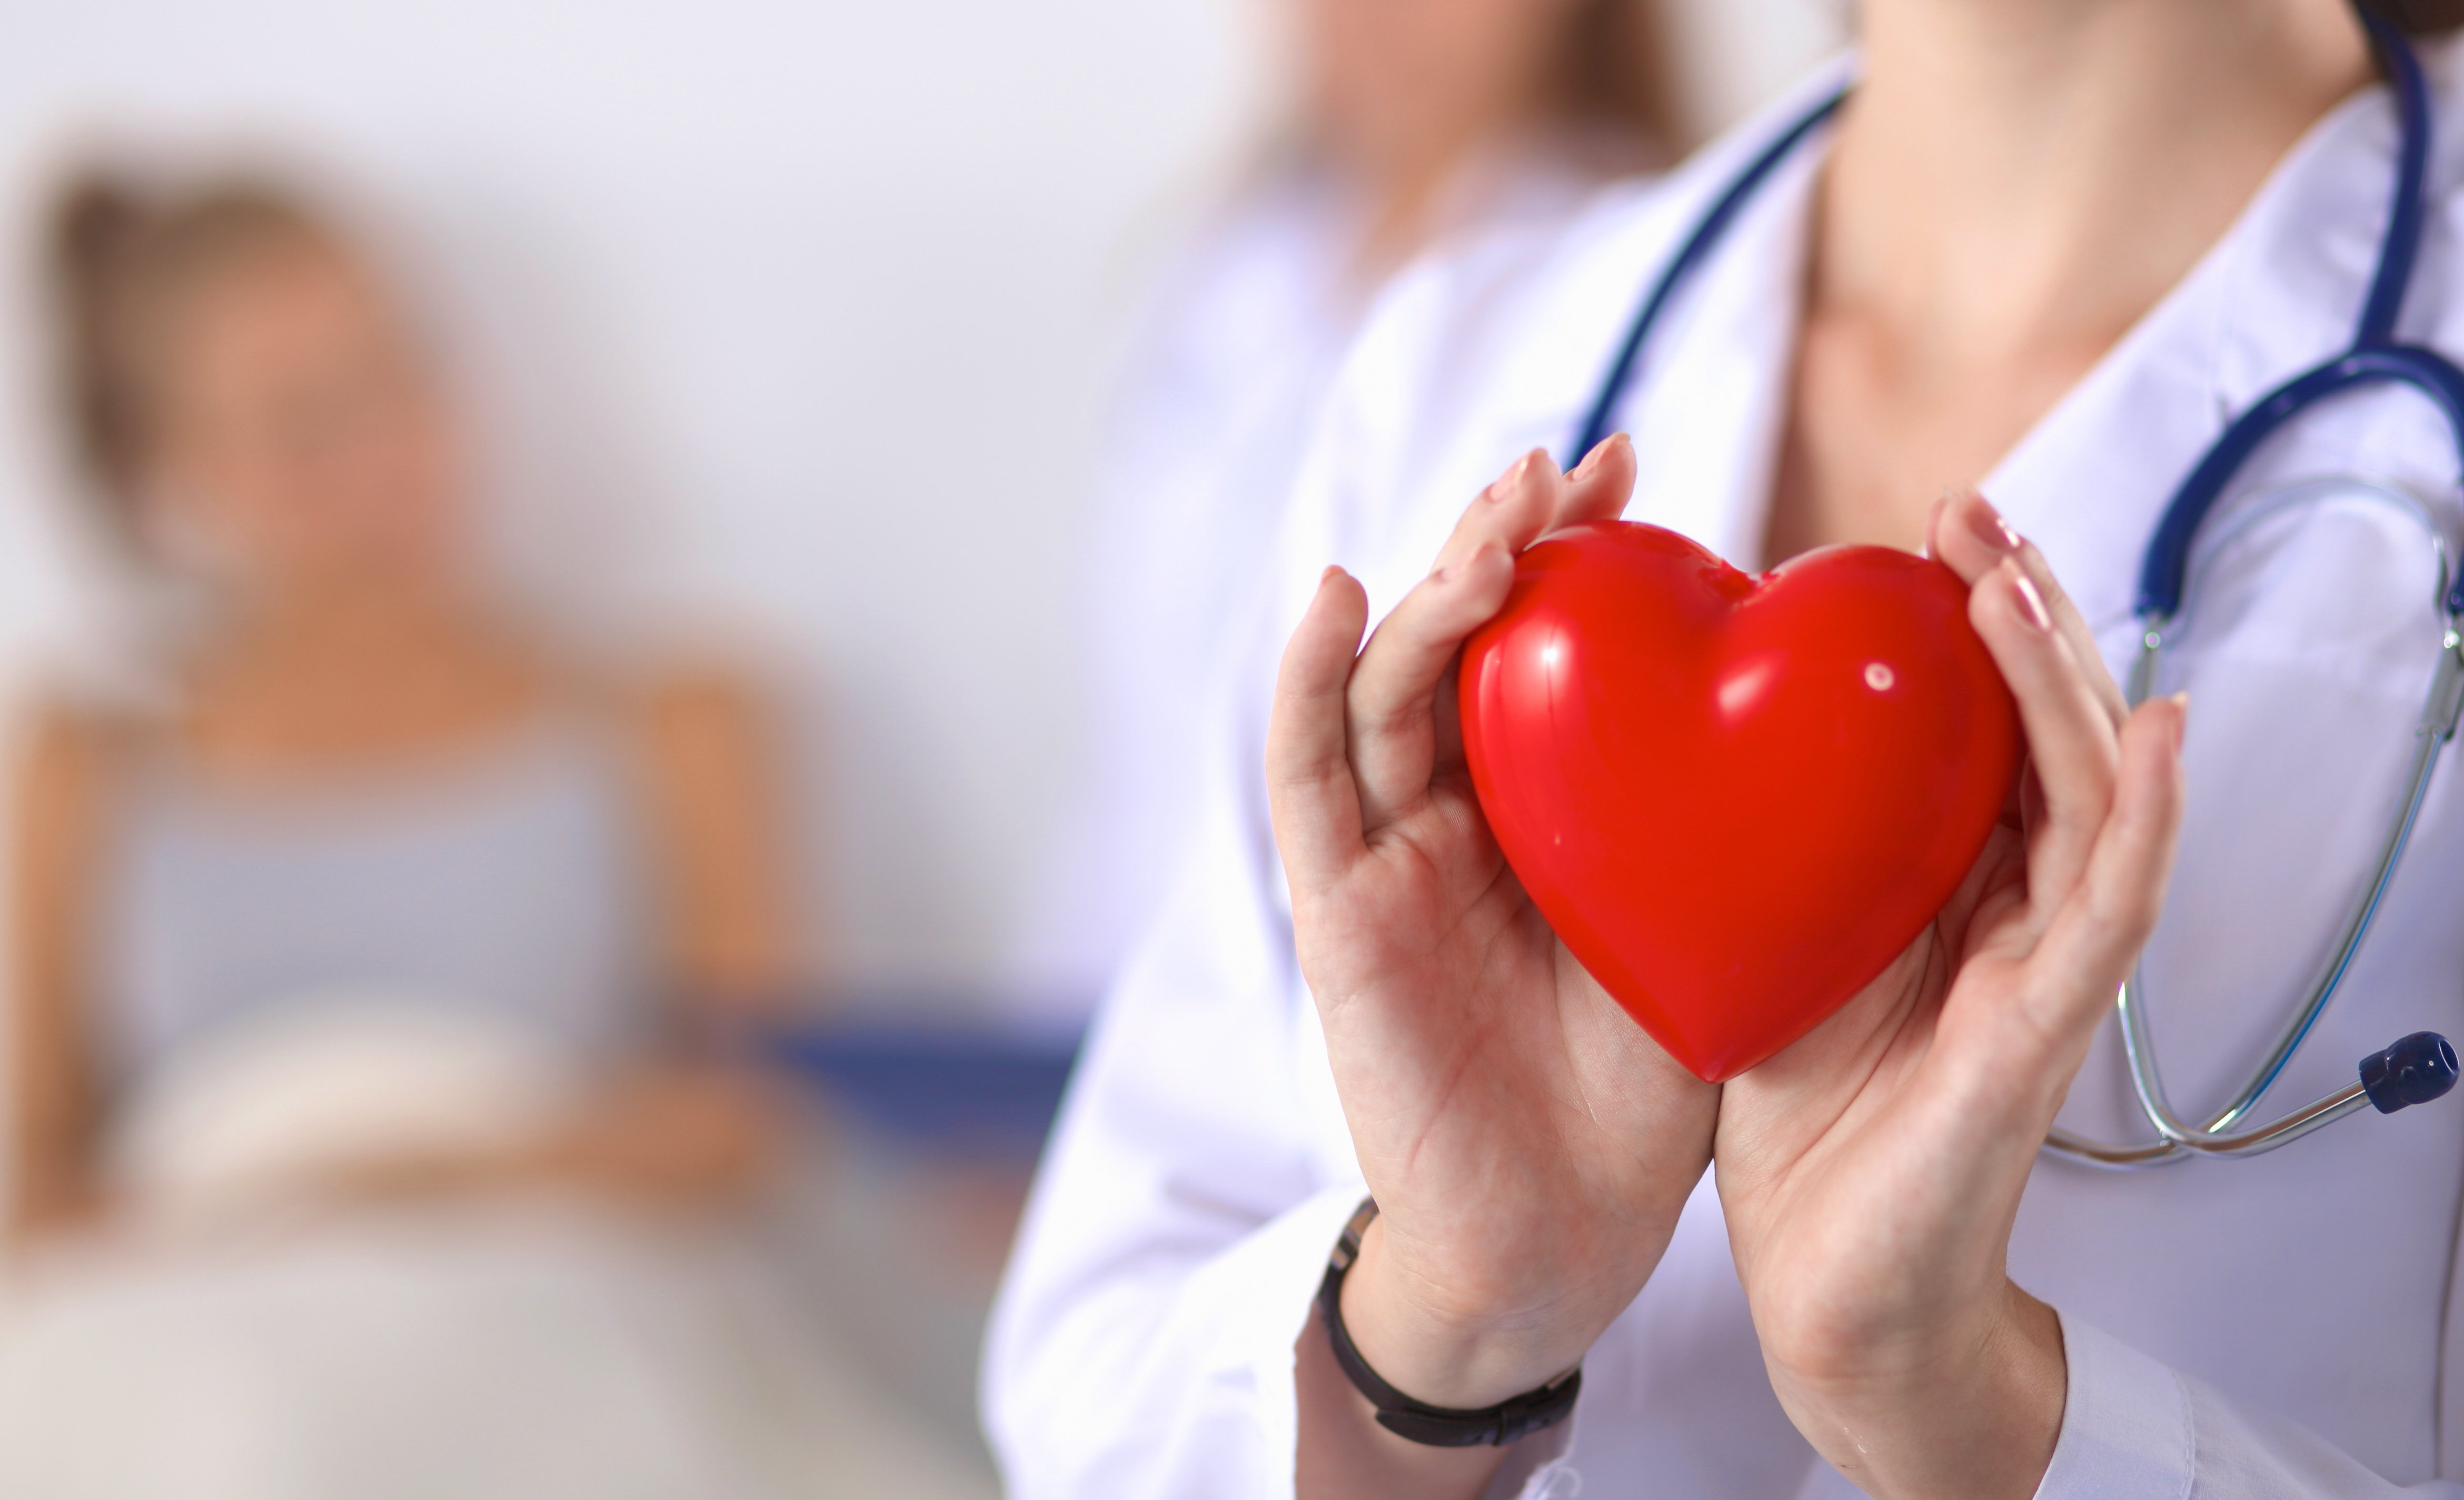 Young woman doctor holding a red heart | Shutterstock.com